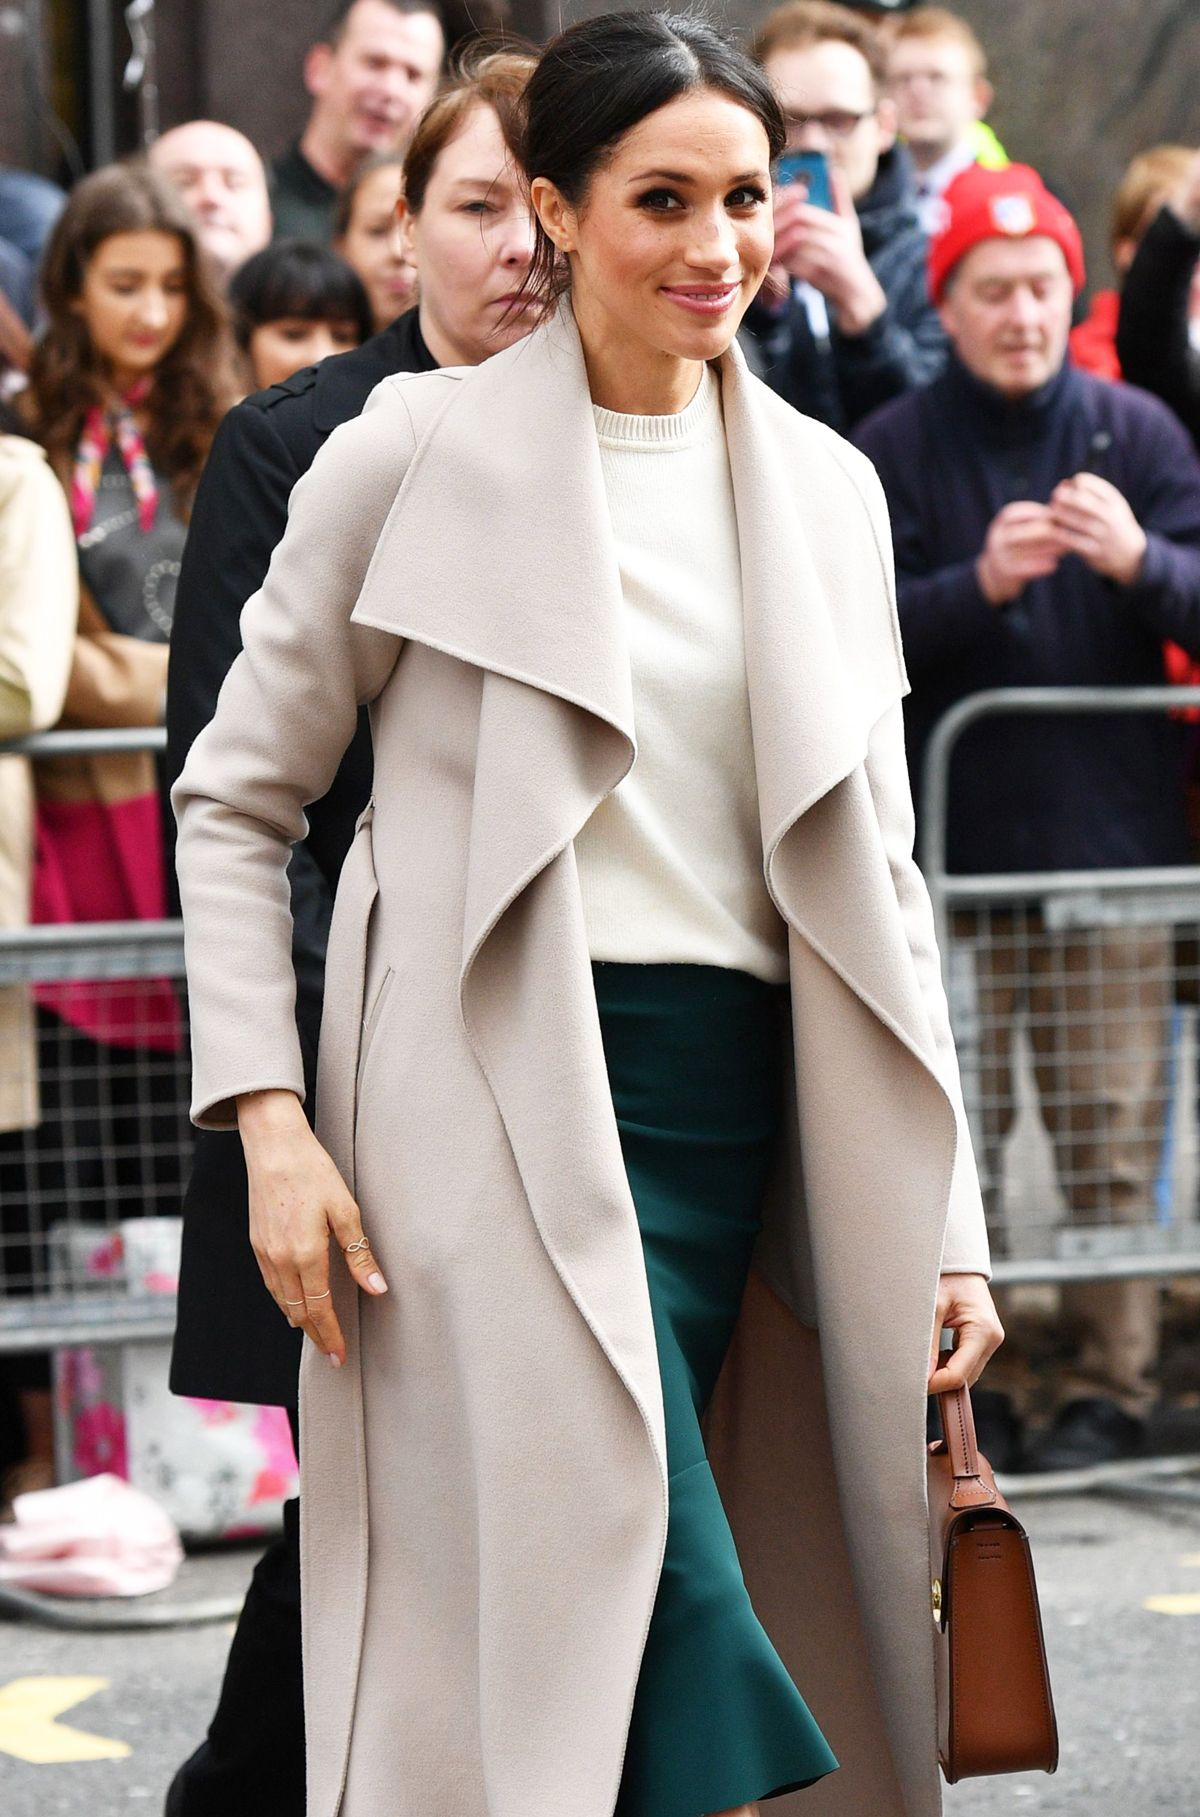 24 Pieces Meghan Markle Should Be Adding to Her Wardrobe This Autumn